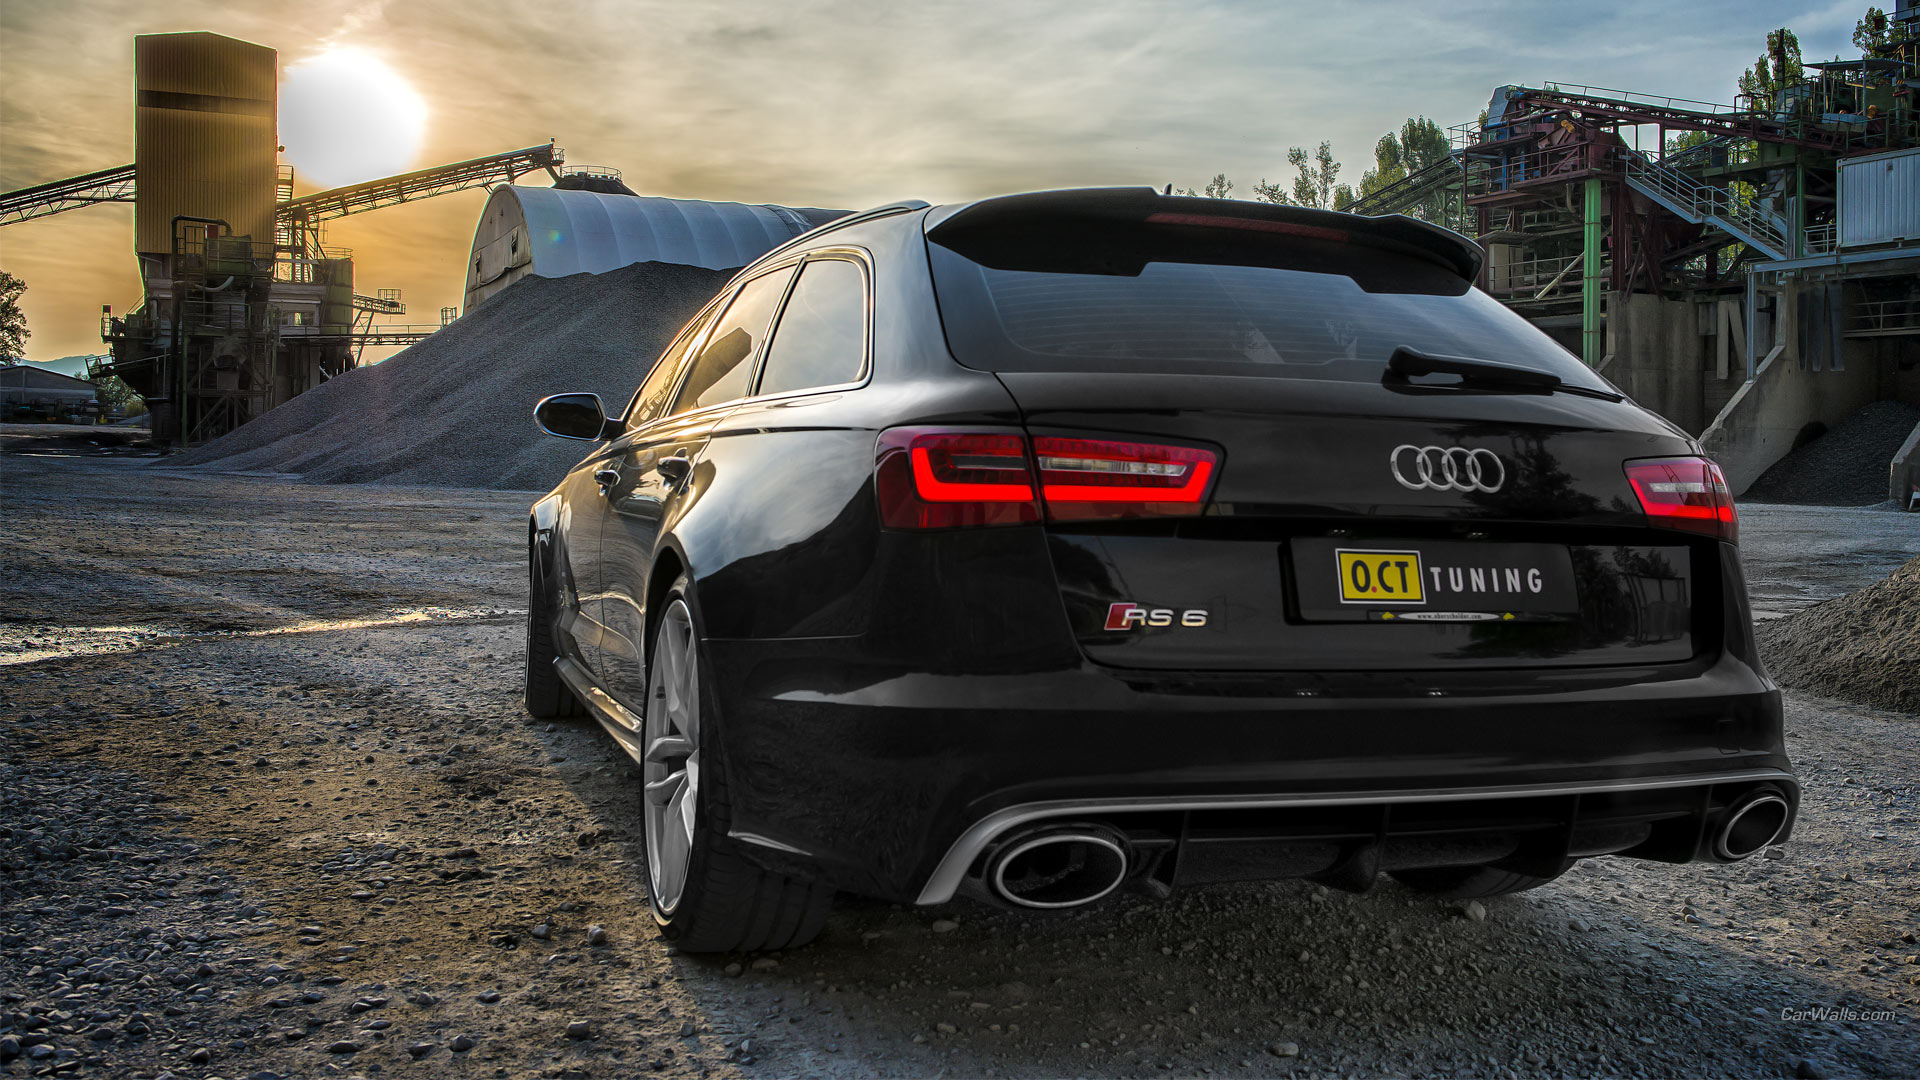 Audi Rs6 Full Hd Wallpaper And Achtergrond 1920x1080